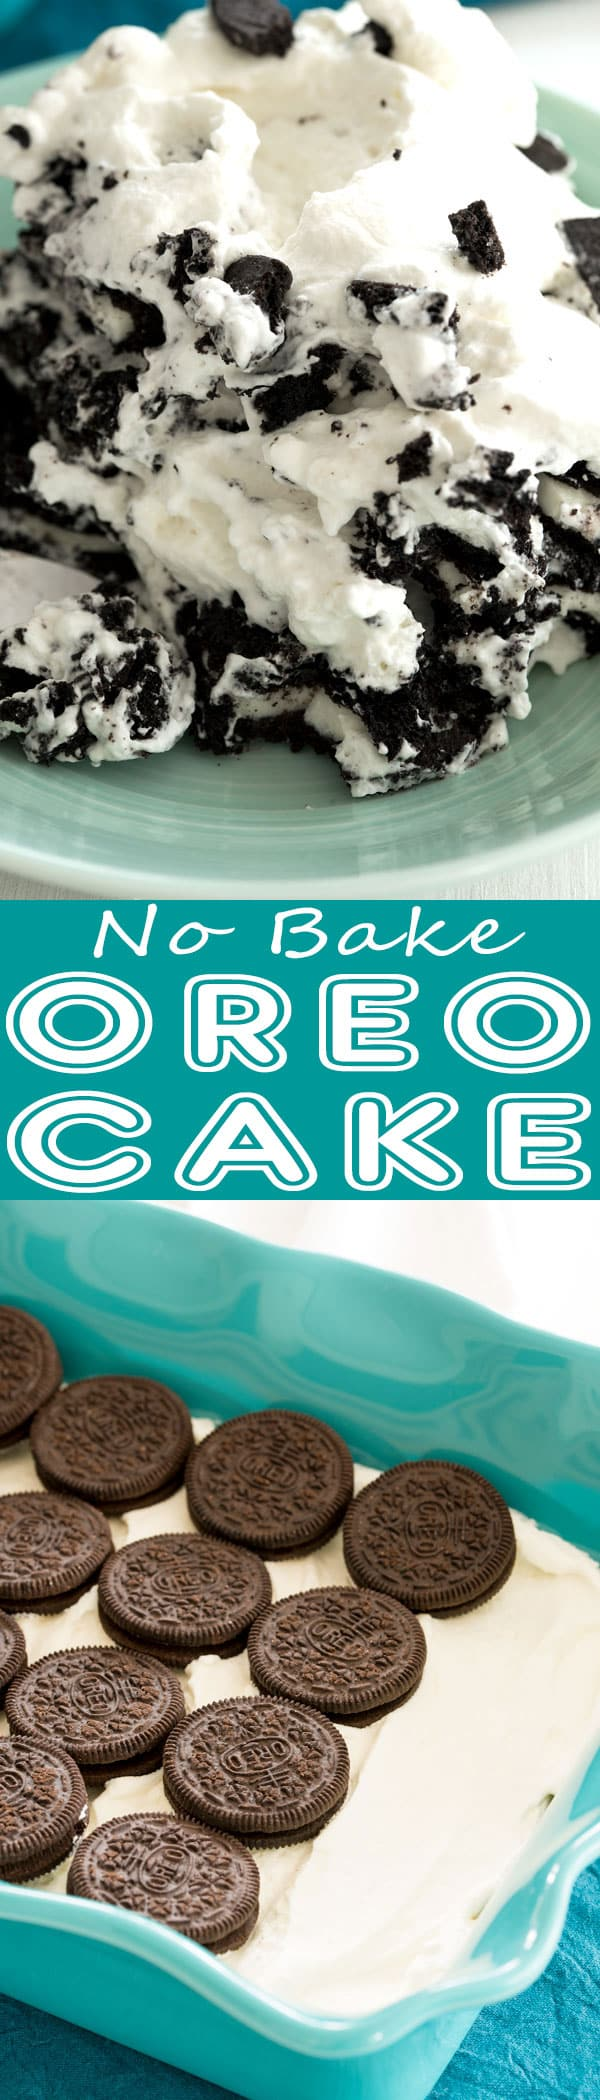 Heavenly Oreo Icebox Cake - an easy no bake Oreo dessert recipe with layers of Oreos and homemade whipped cream. Cookies and cream fluff heaven!!